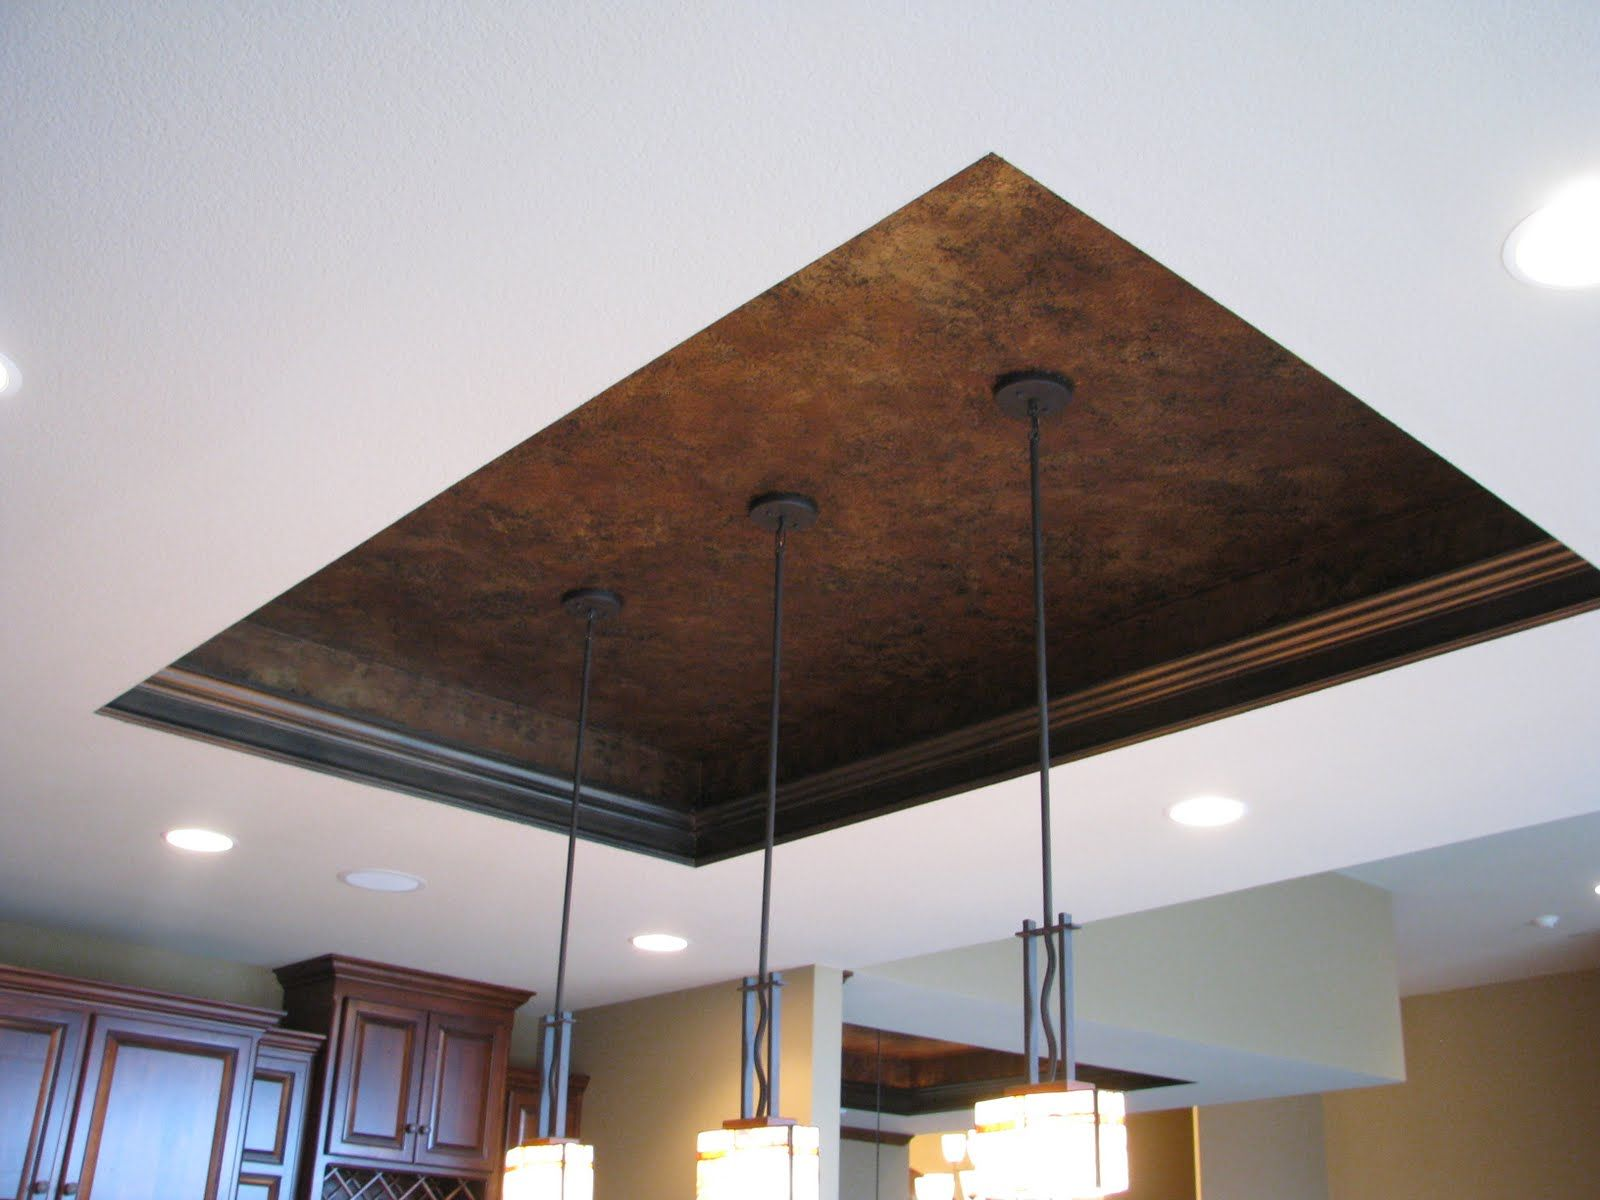 Ceiling Indent House Ideas In 2019 Ceiling Texture